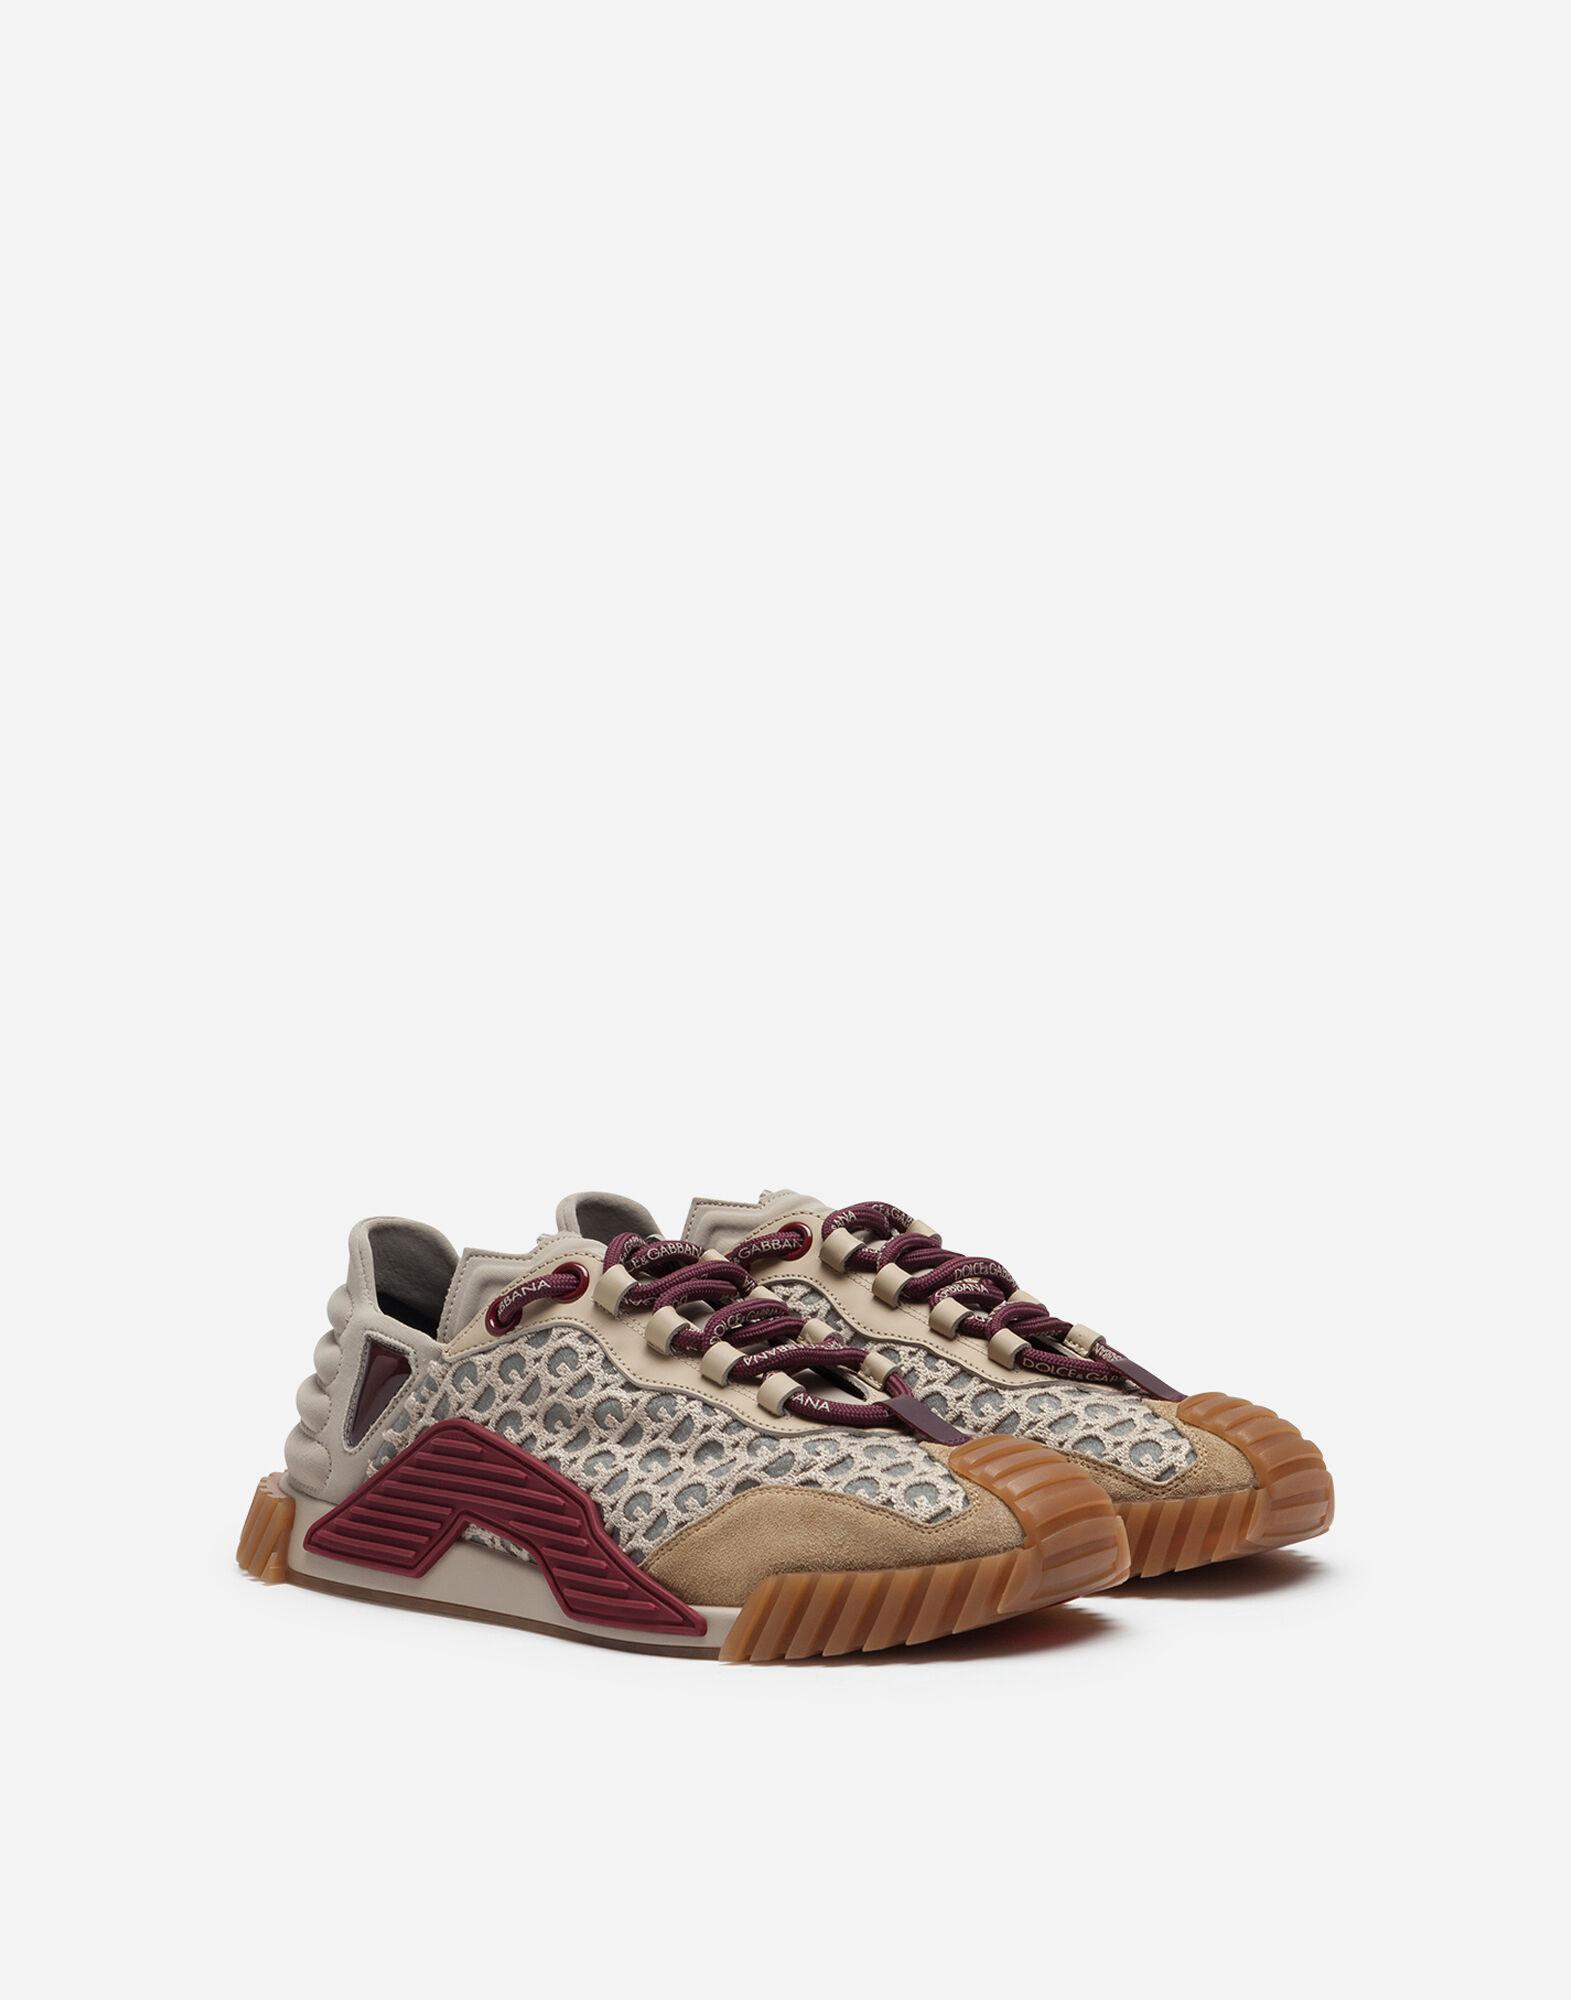 NS1 slip-on sneakers in mixed materials with allover DG print 1